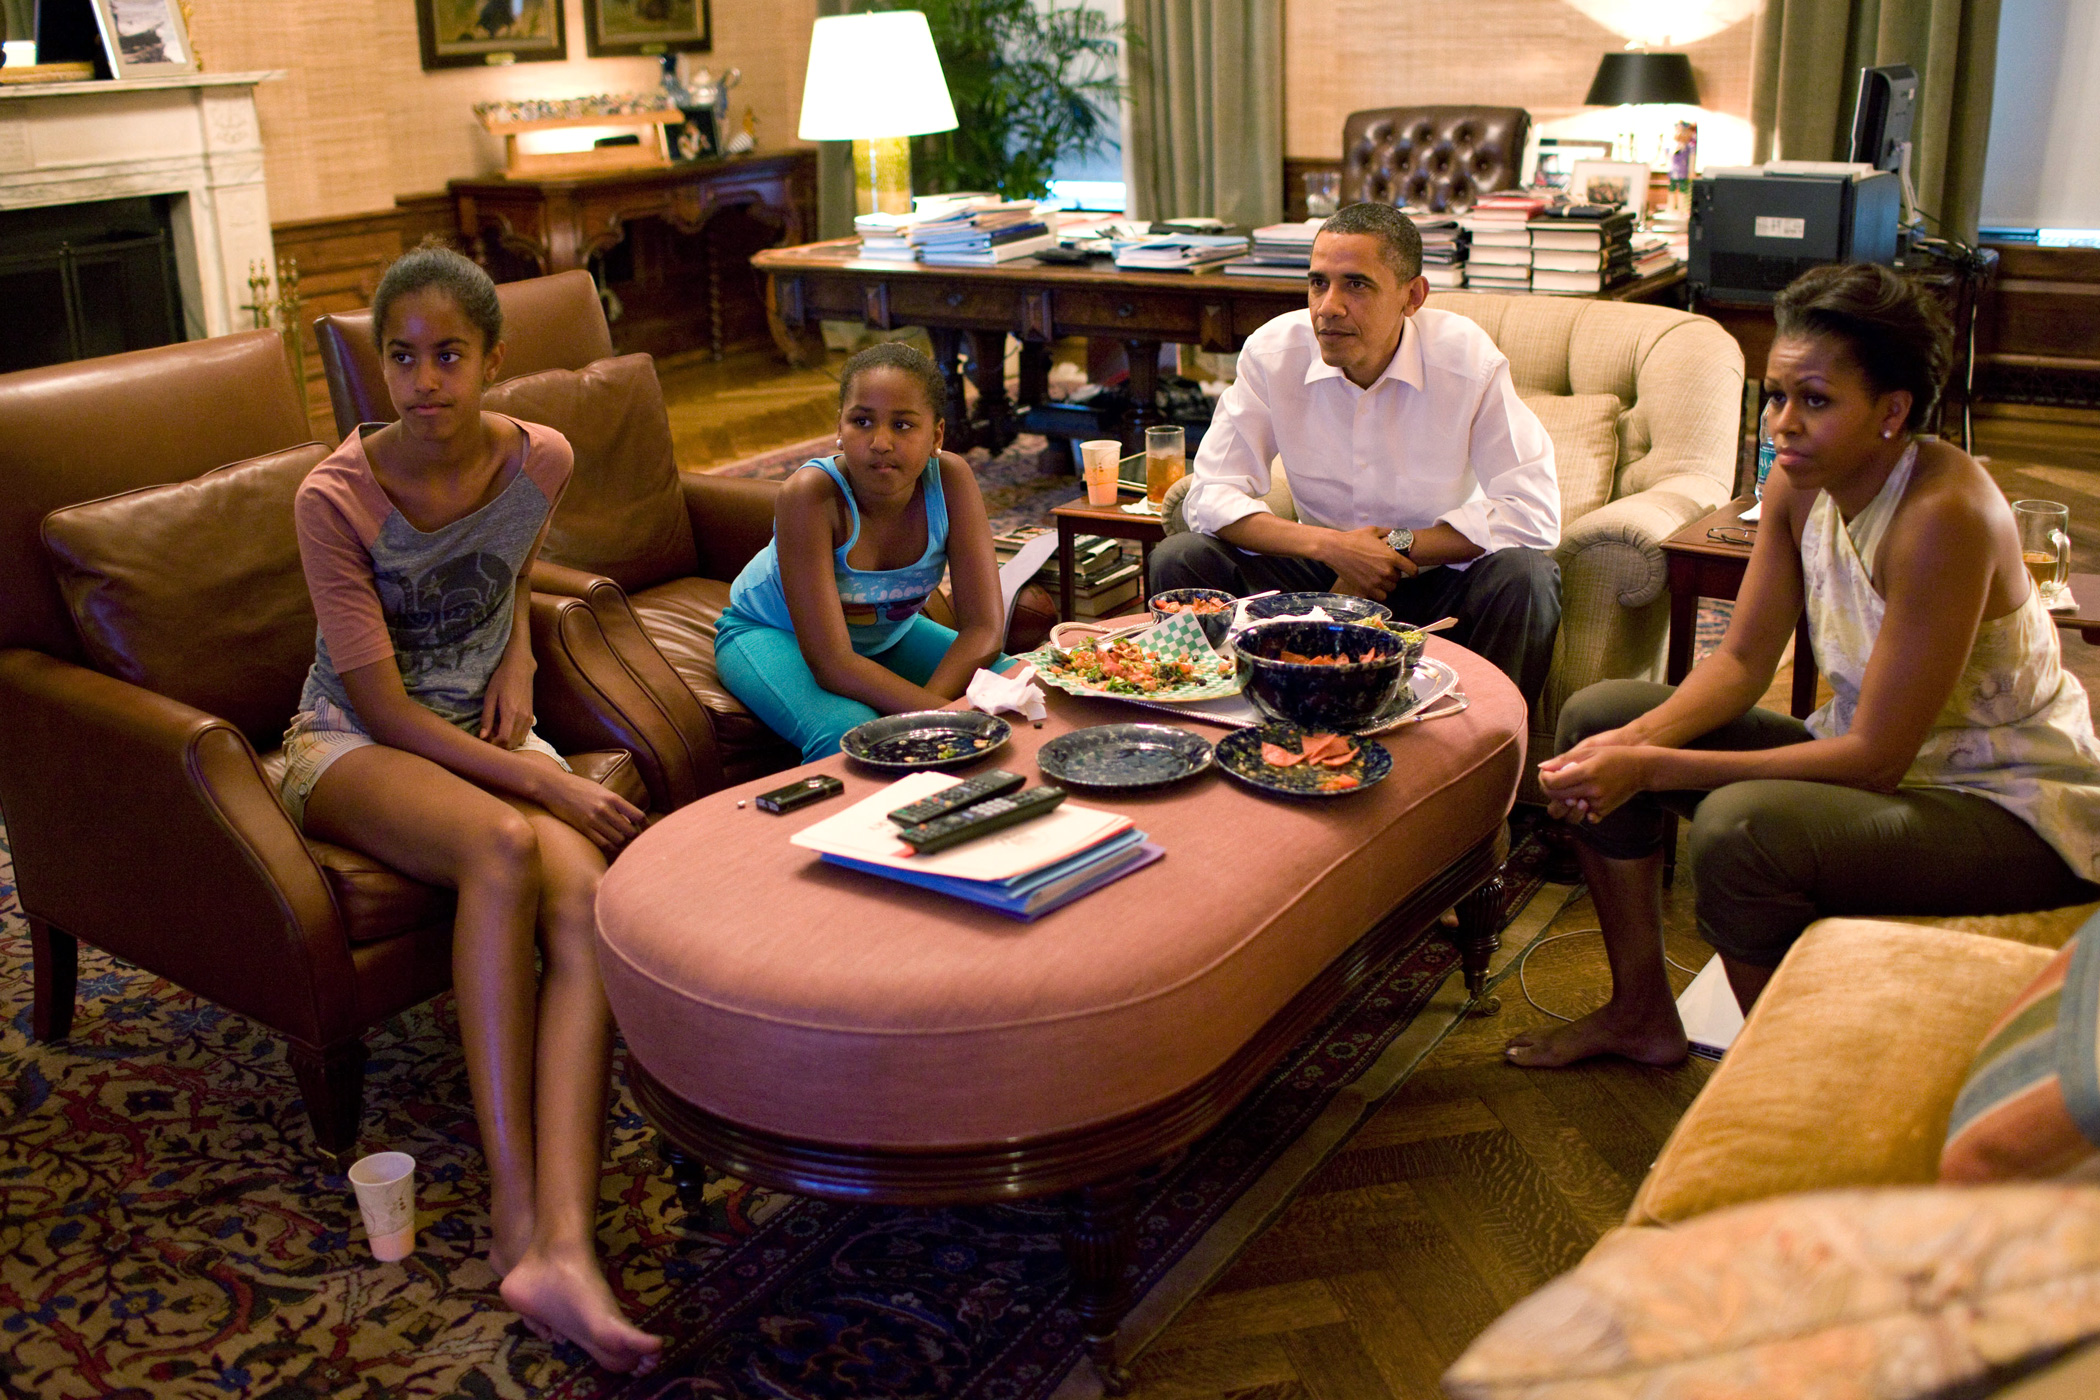 July 17, 2011                               In this handout provided by the White House, President Barack Obama and first lady Michelle Obama with their daughters Sasha and Malia watch a World Cup soccer match from the Treaty Room office in the residence of the White House.